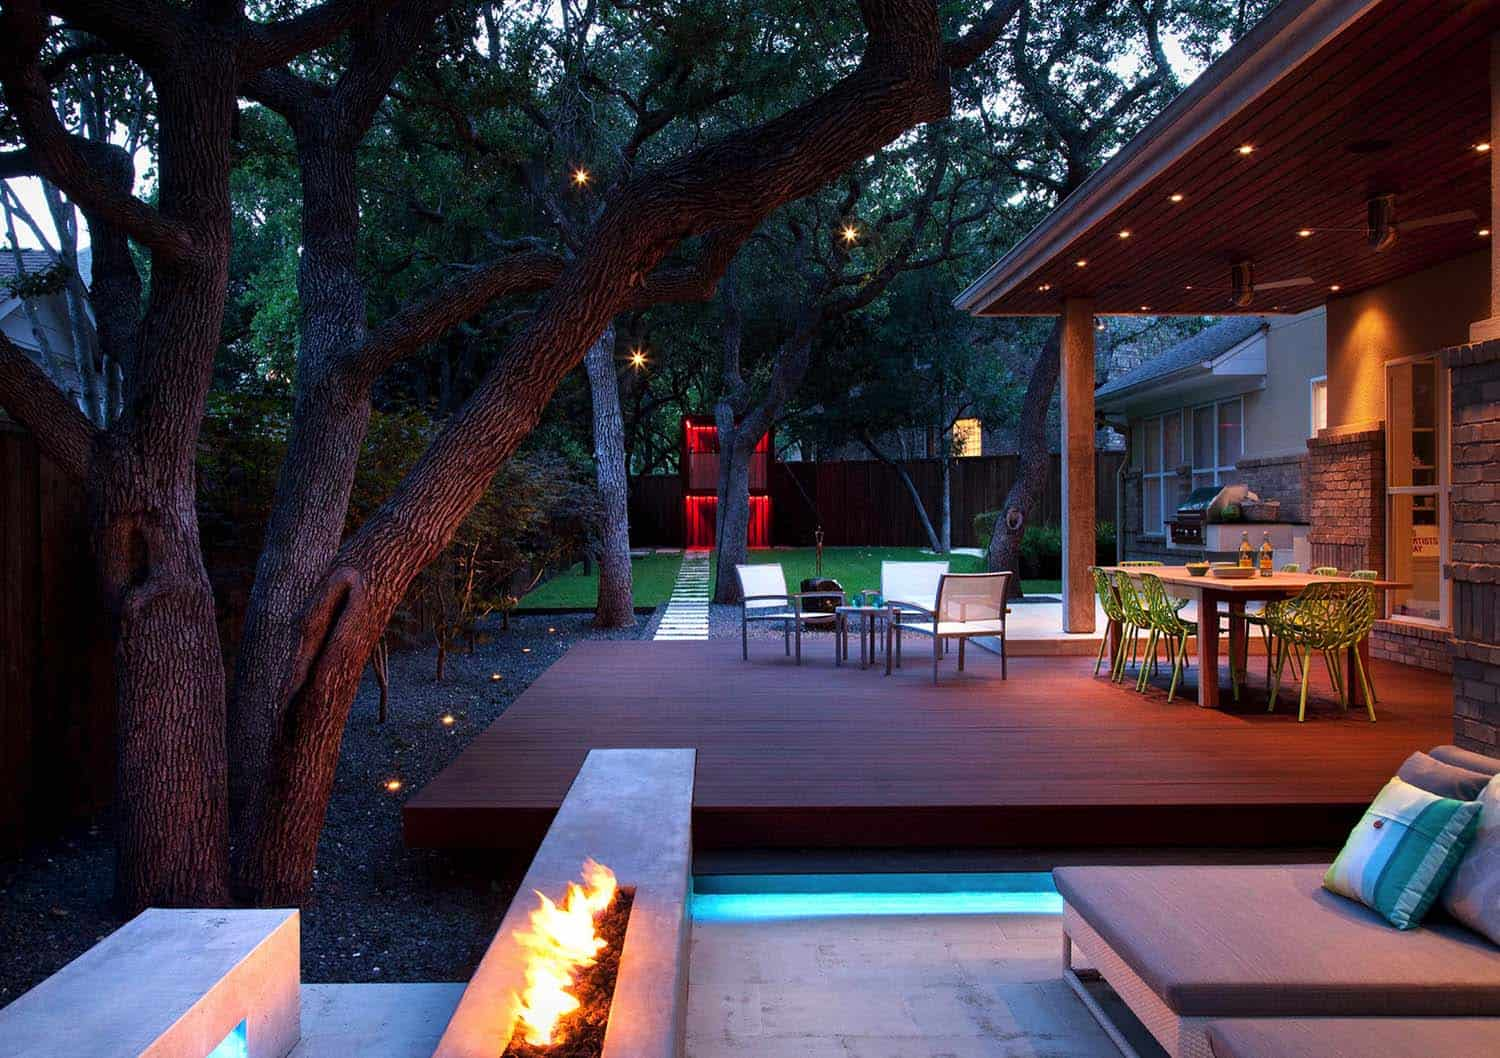 25+ Amazing Ideas For Creating An Outdoor Deck For ... on Backyard Deck Designs id=70502